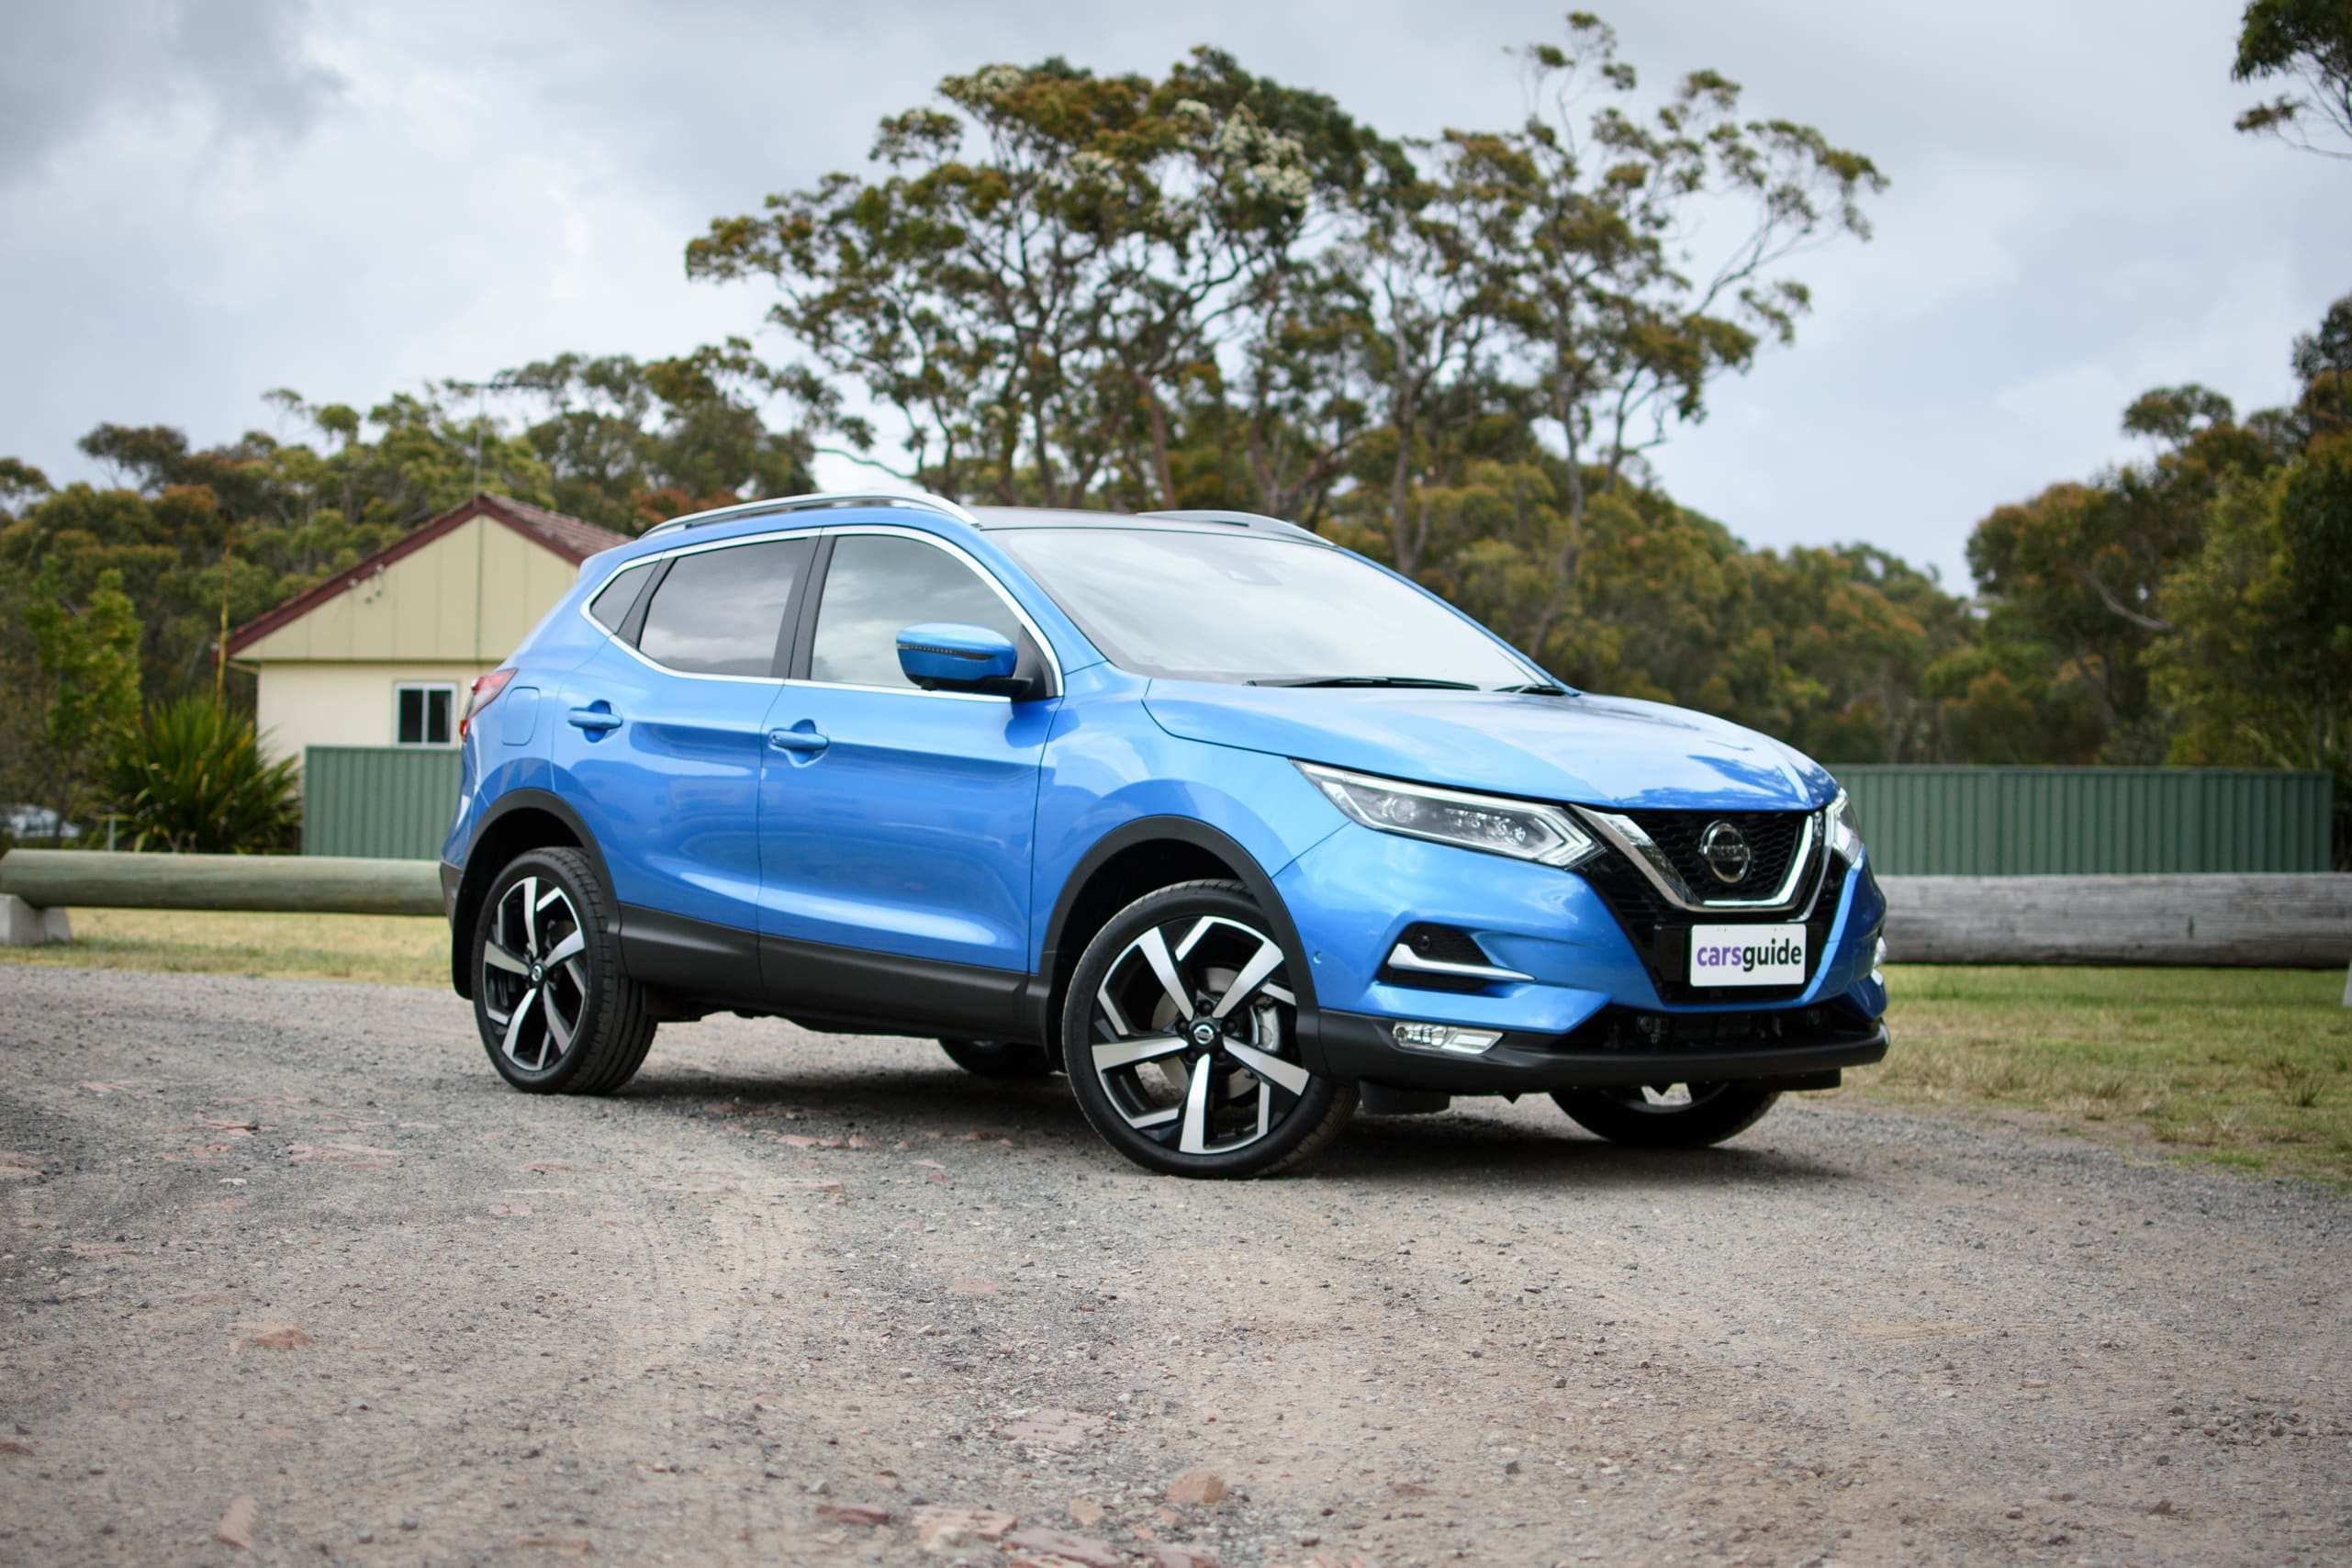 27 All New 2019 Nissan Review And Release Date